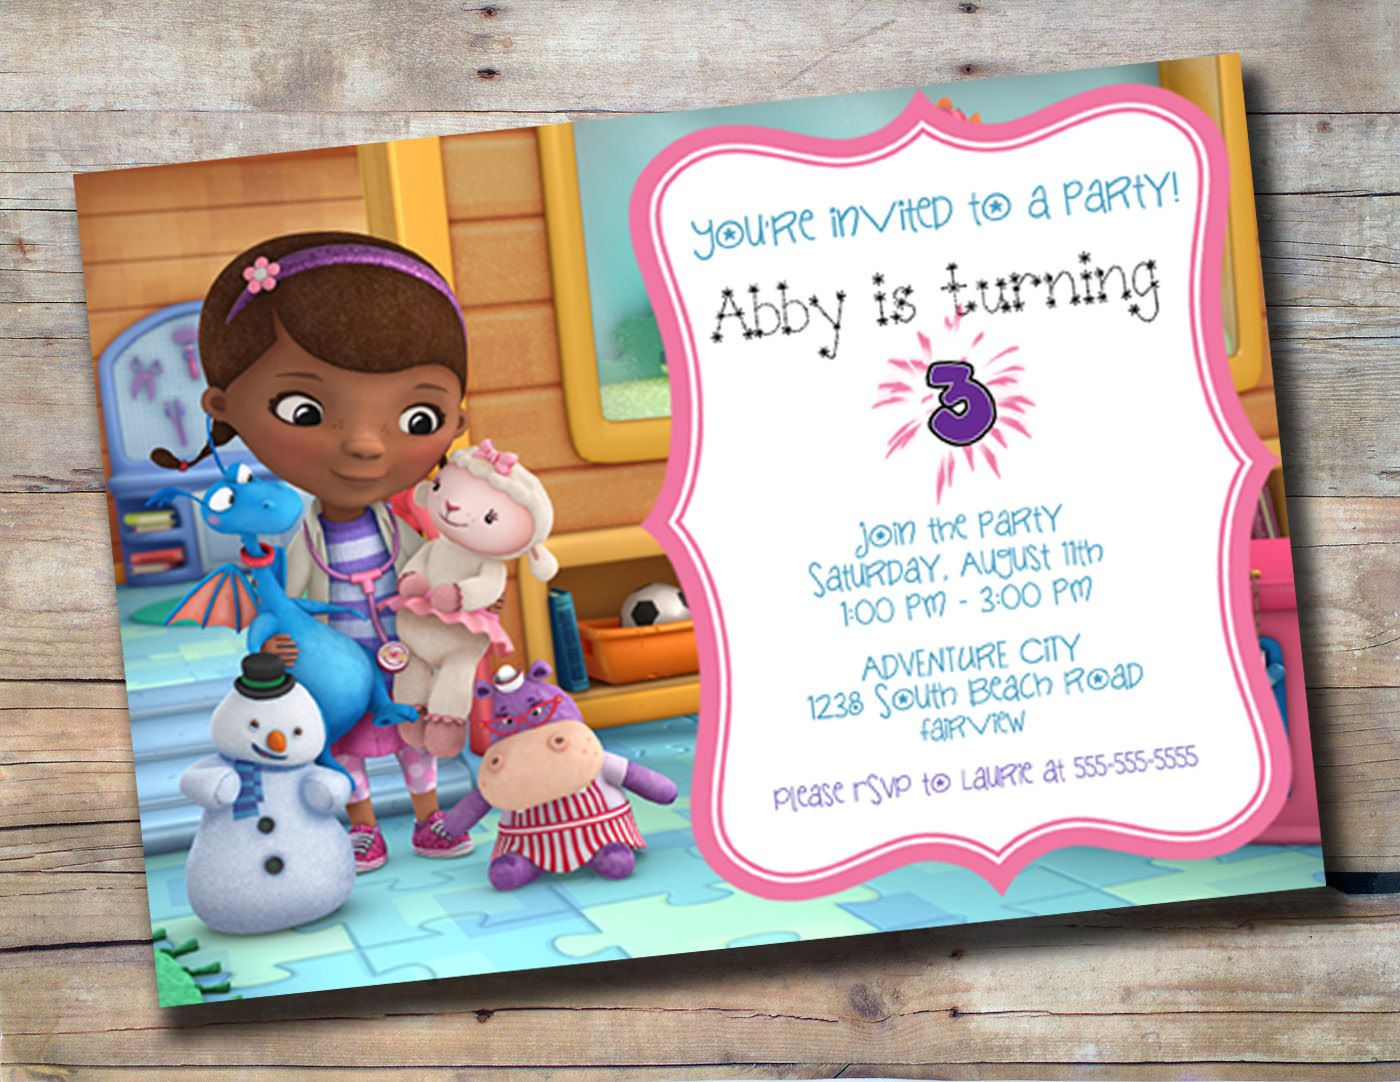 Cute Doc McStuffins Customized Birthday Invitation 1000 Via Etsy Digital File So Youre Purchasing The Design